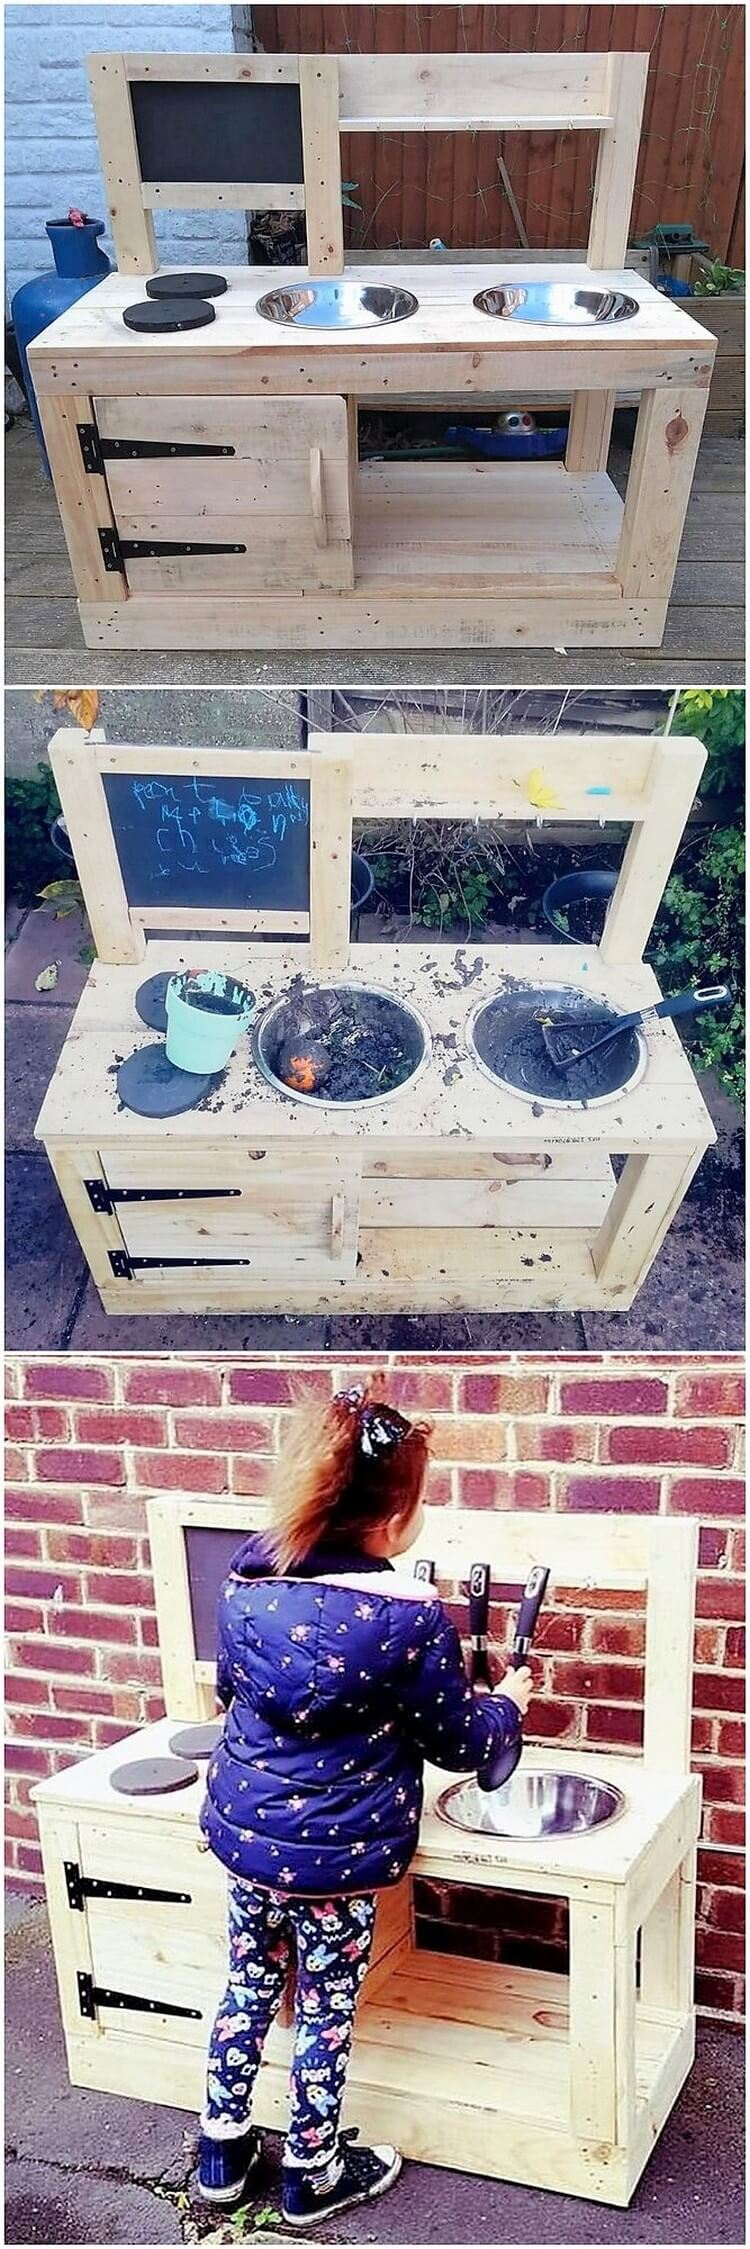 Pallet Mud Kitchen for Kids